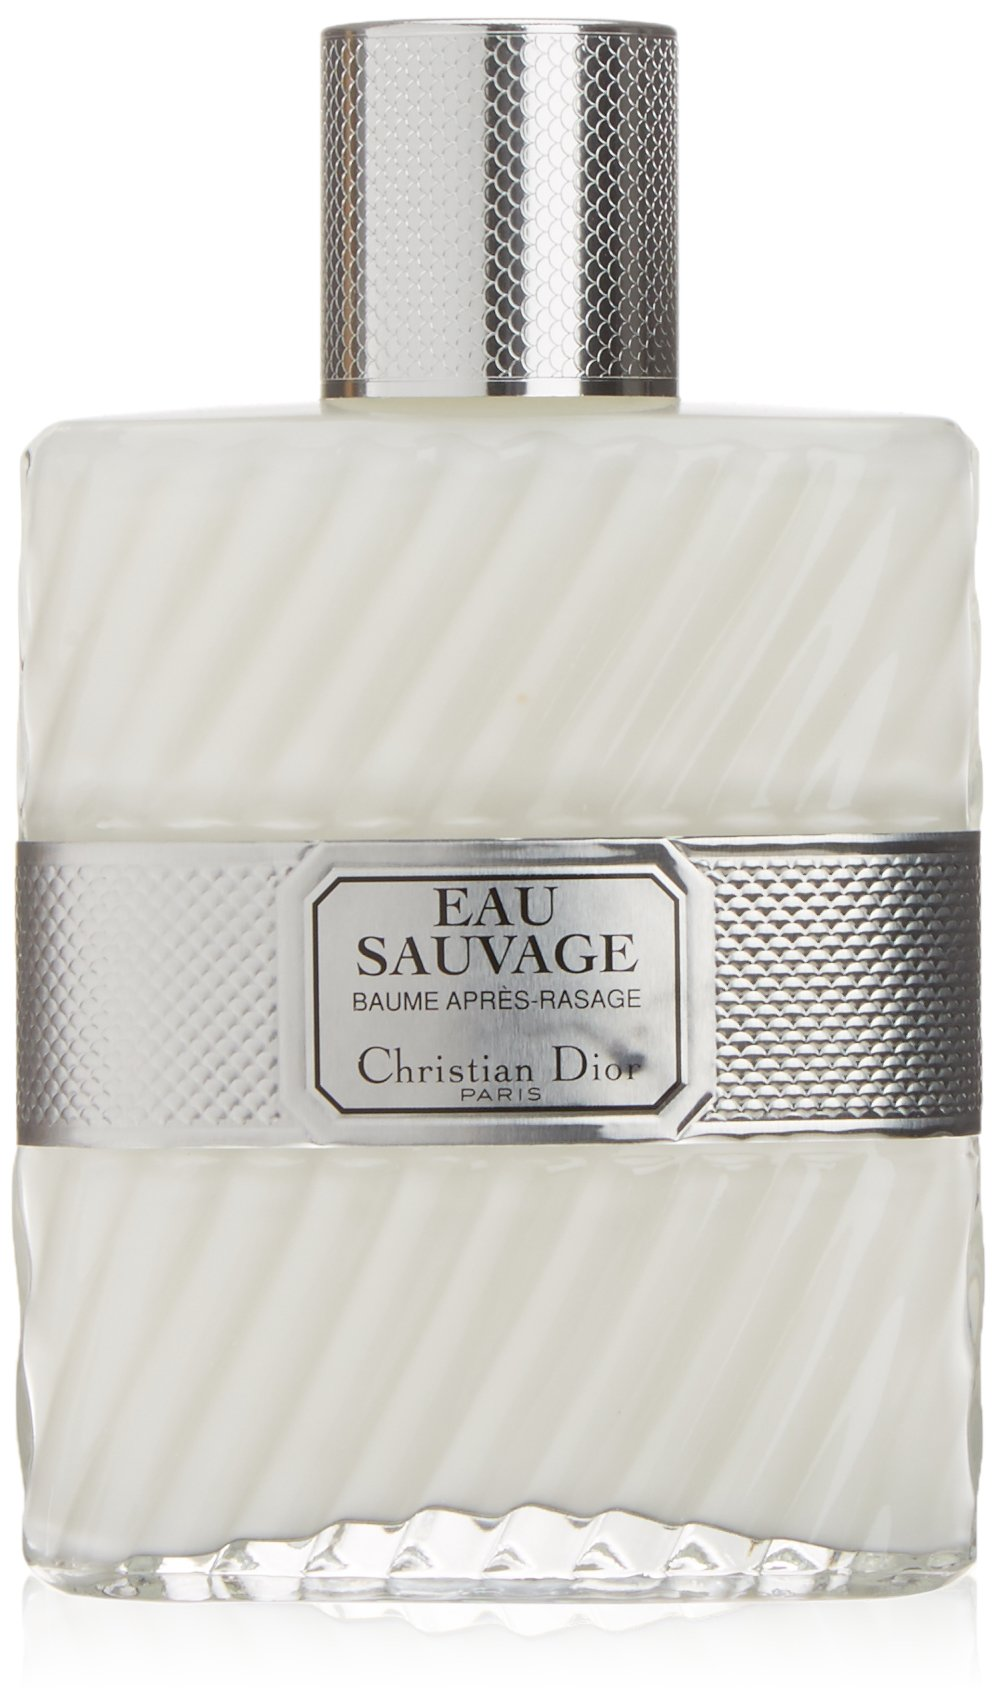 Christian Dior Eau Sauvage After Shave Balm for Men, 3.4 Ounce